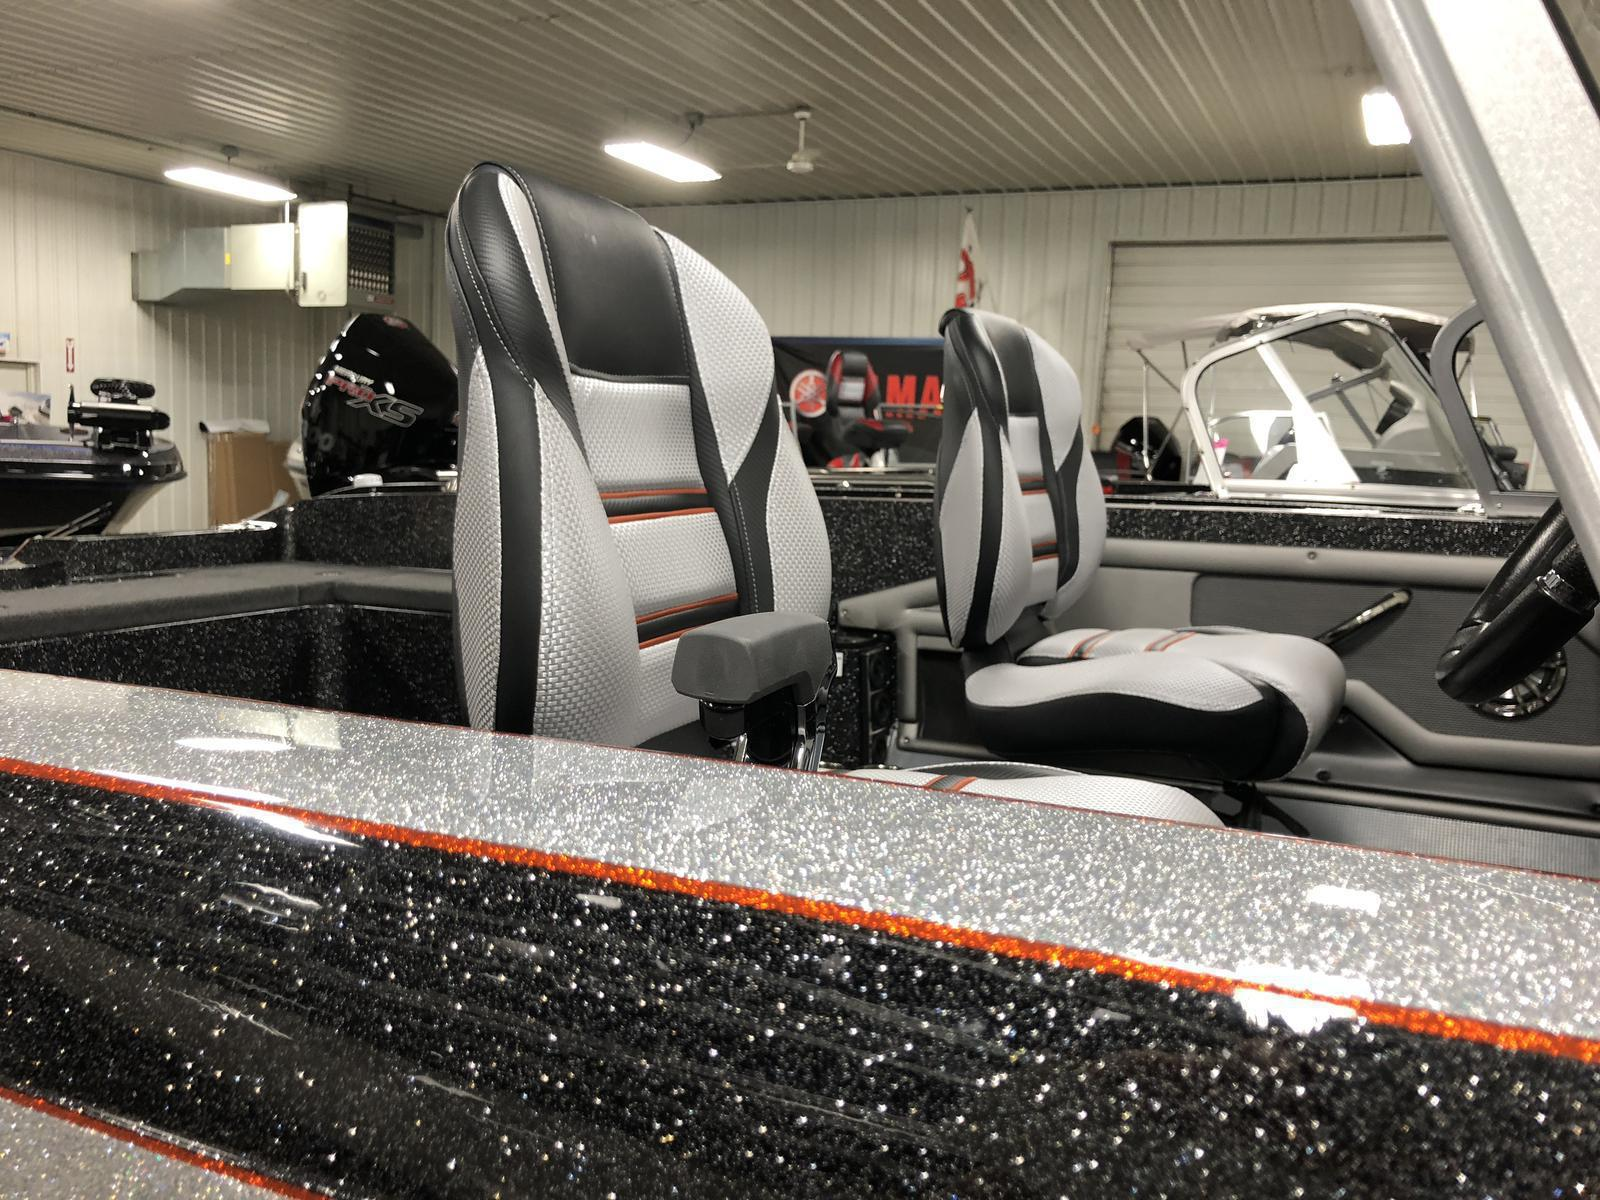 2019 Ranger 621FS for sale in Green Bay, WI  Pamp's Outboard